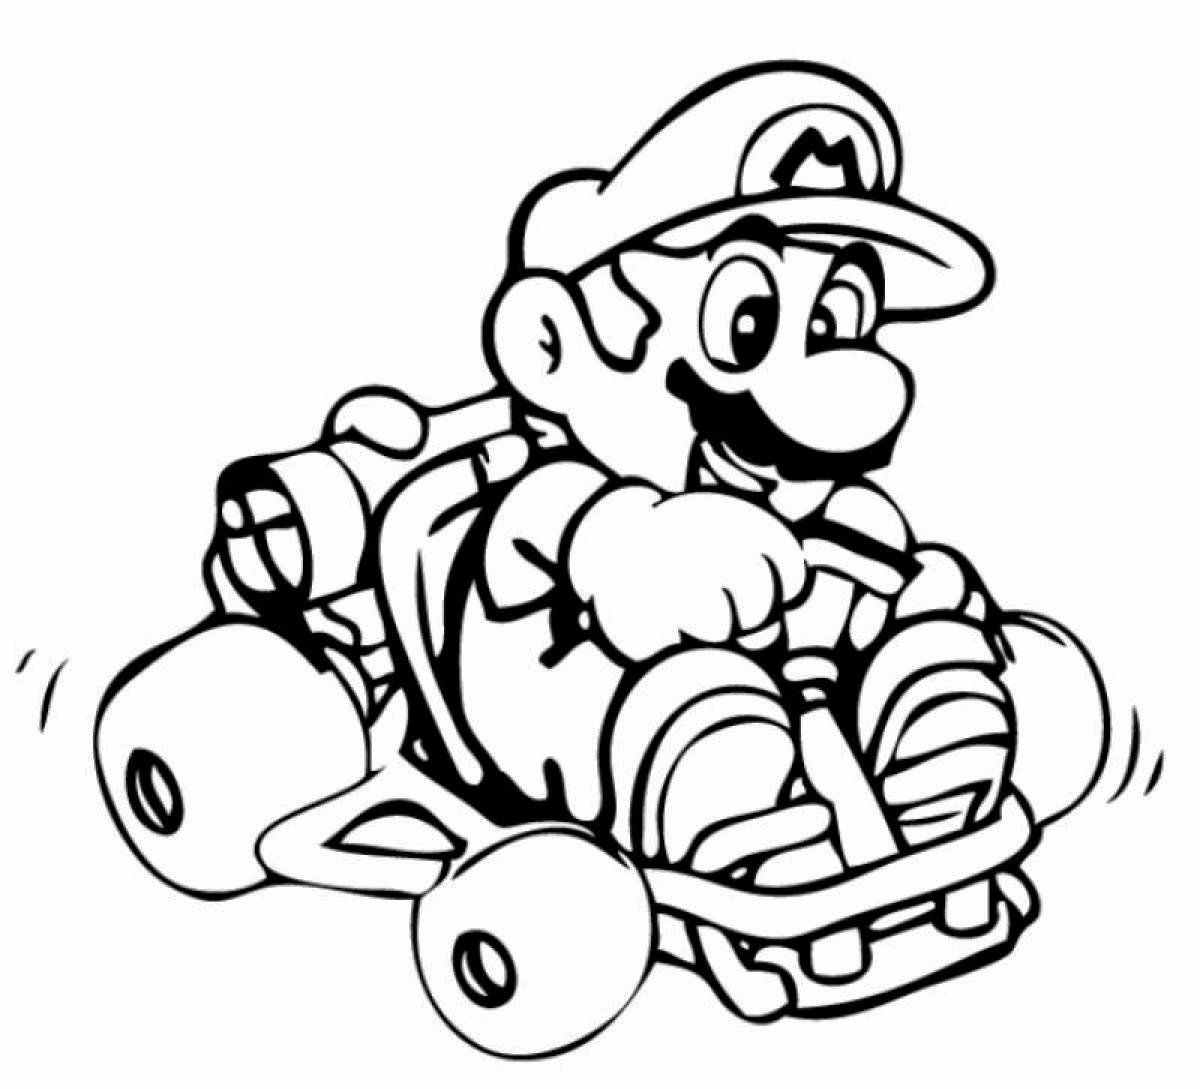 Mario Coloring Pages Printable Awesome Coloring Pages Mario Coloring Pages Free And Printable Super Coloring Pages Owl Coloring Pages Cartoon Coloring Pages